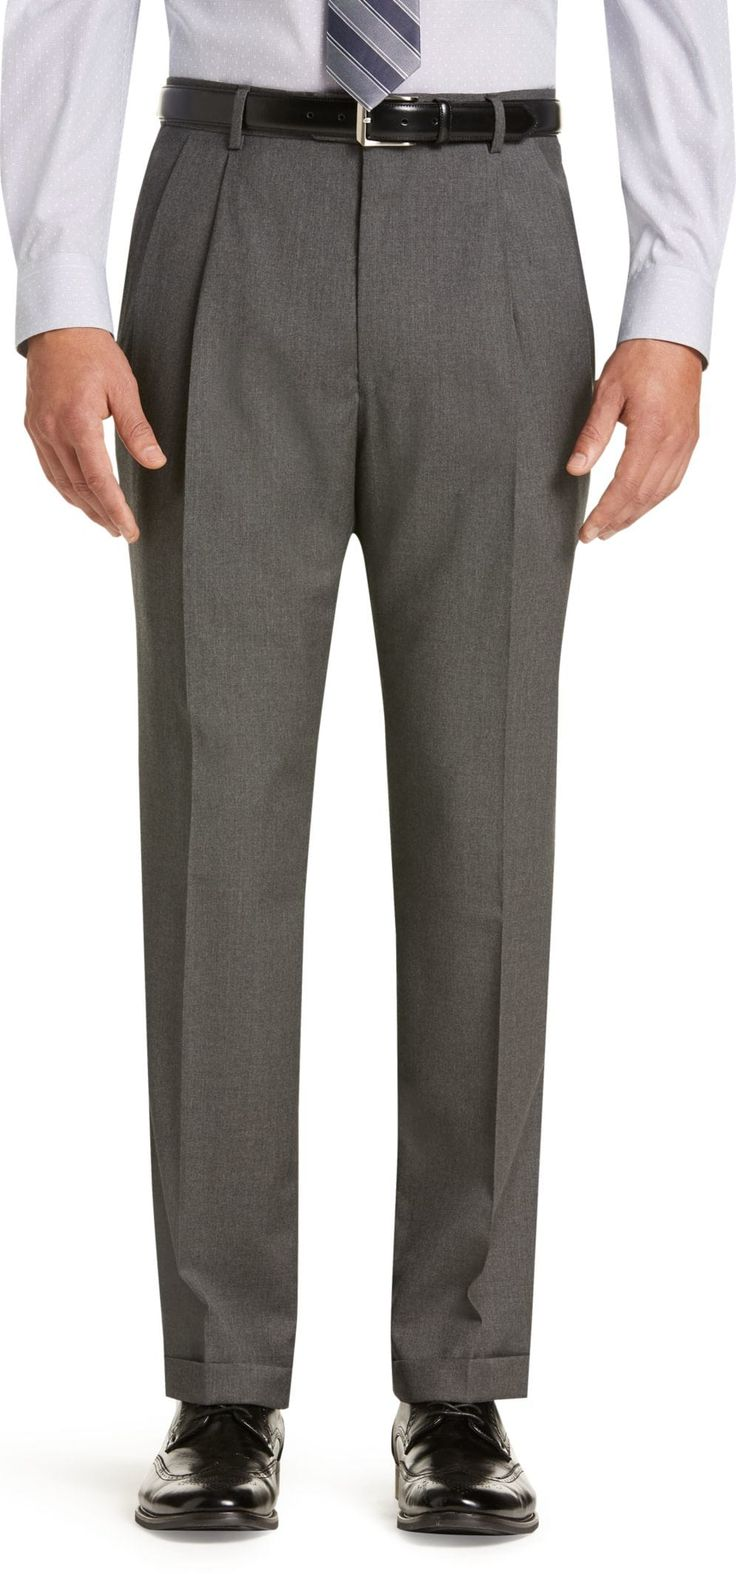 Signature Collection Traditional Fit Pleated Front Suit Separate Pants - Big & Tall CLEARANCE